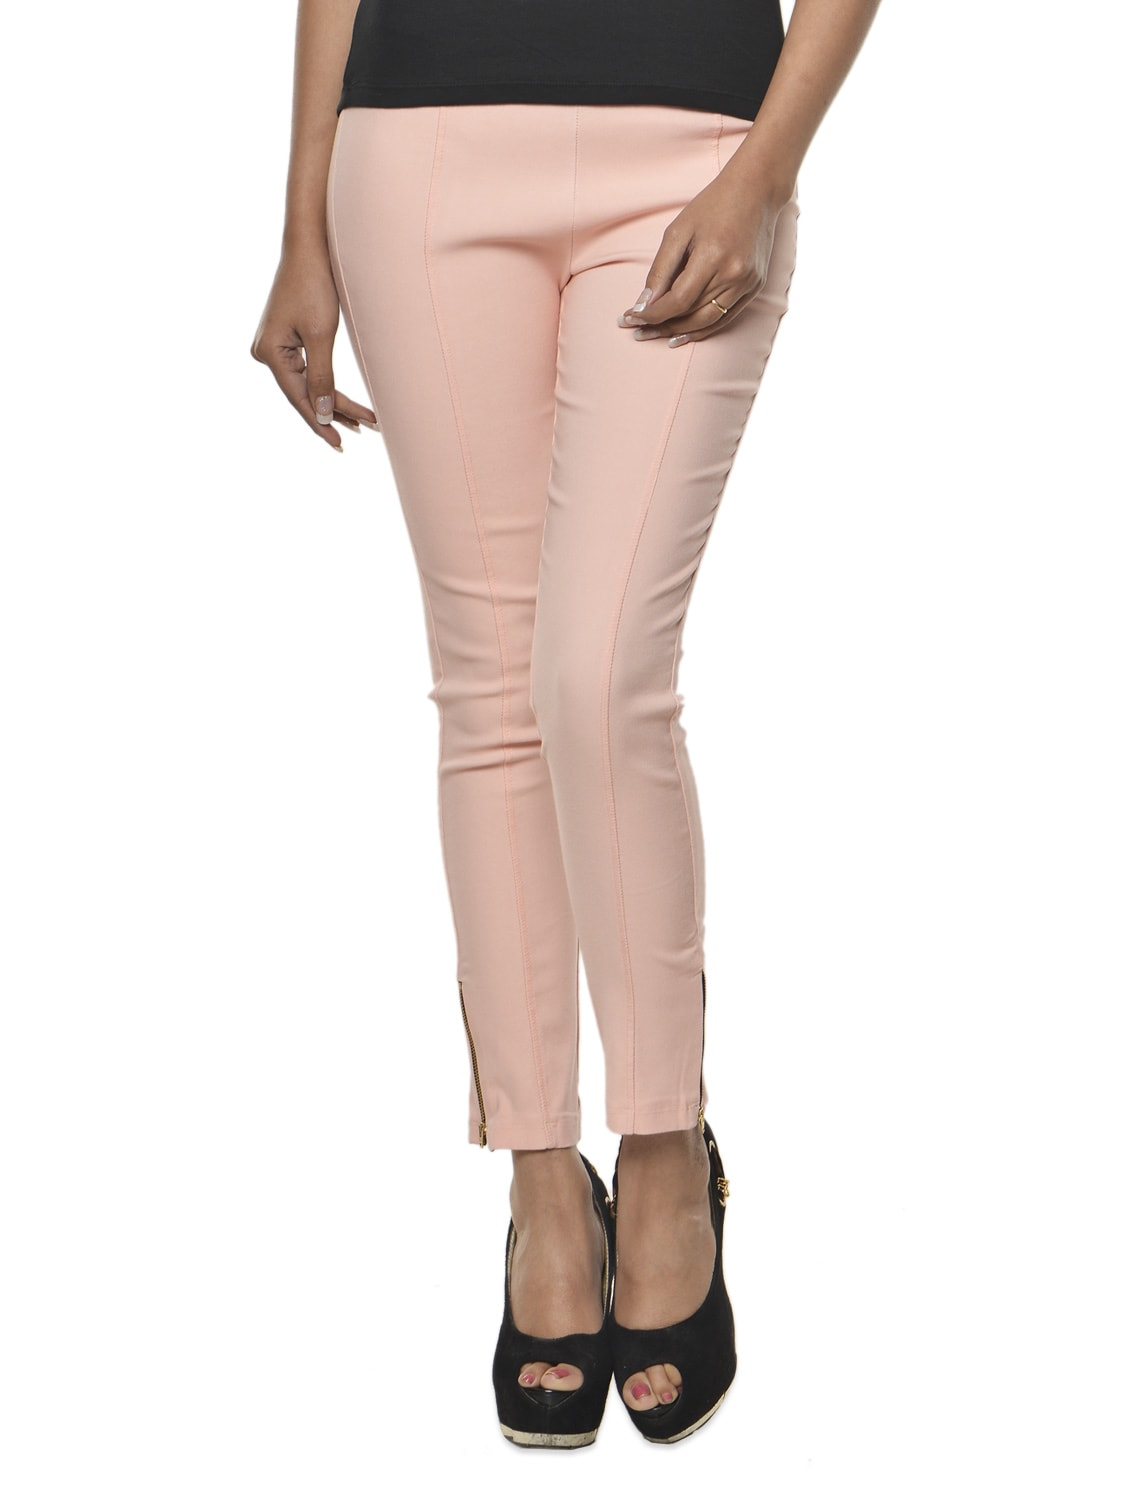 Baby Pink Cotton-Knit Jeggings - Ursense